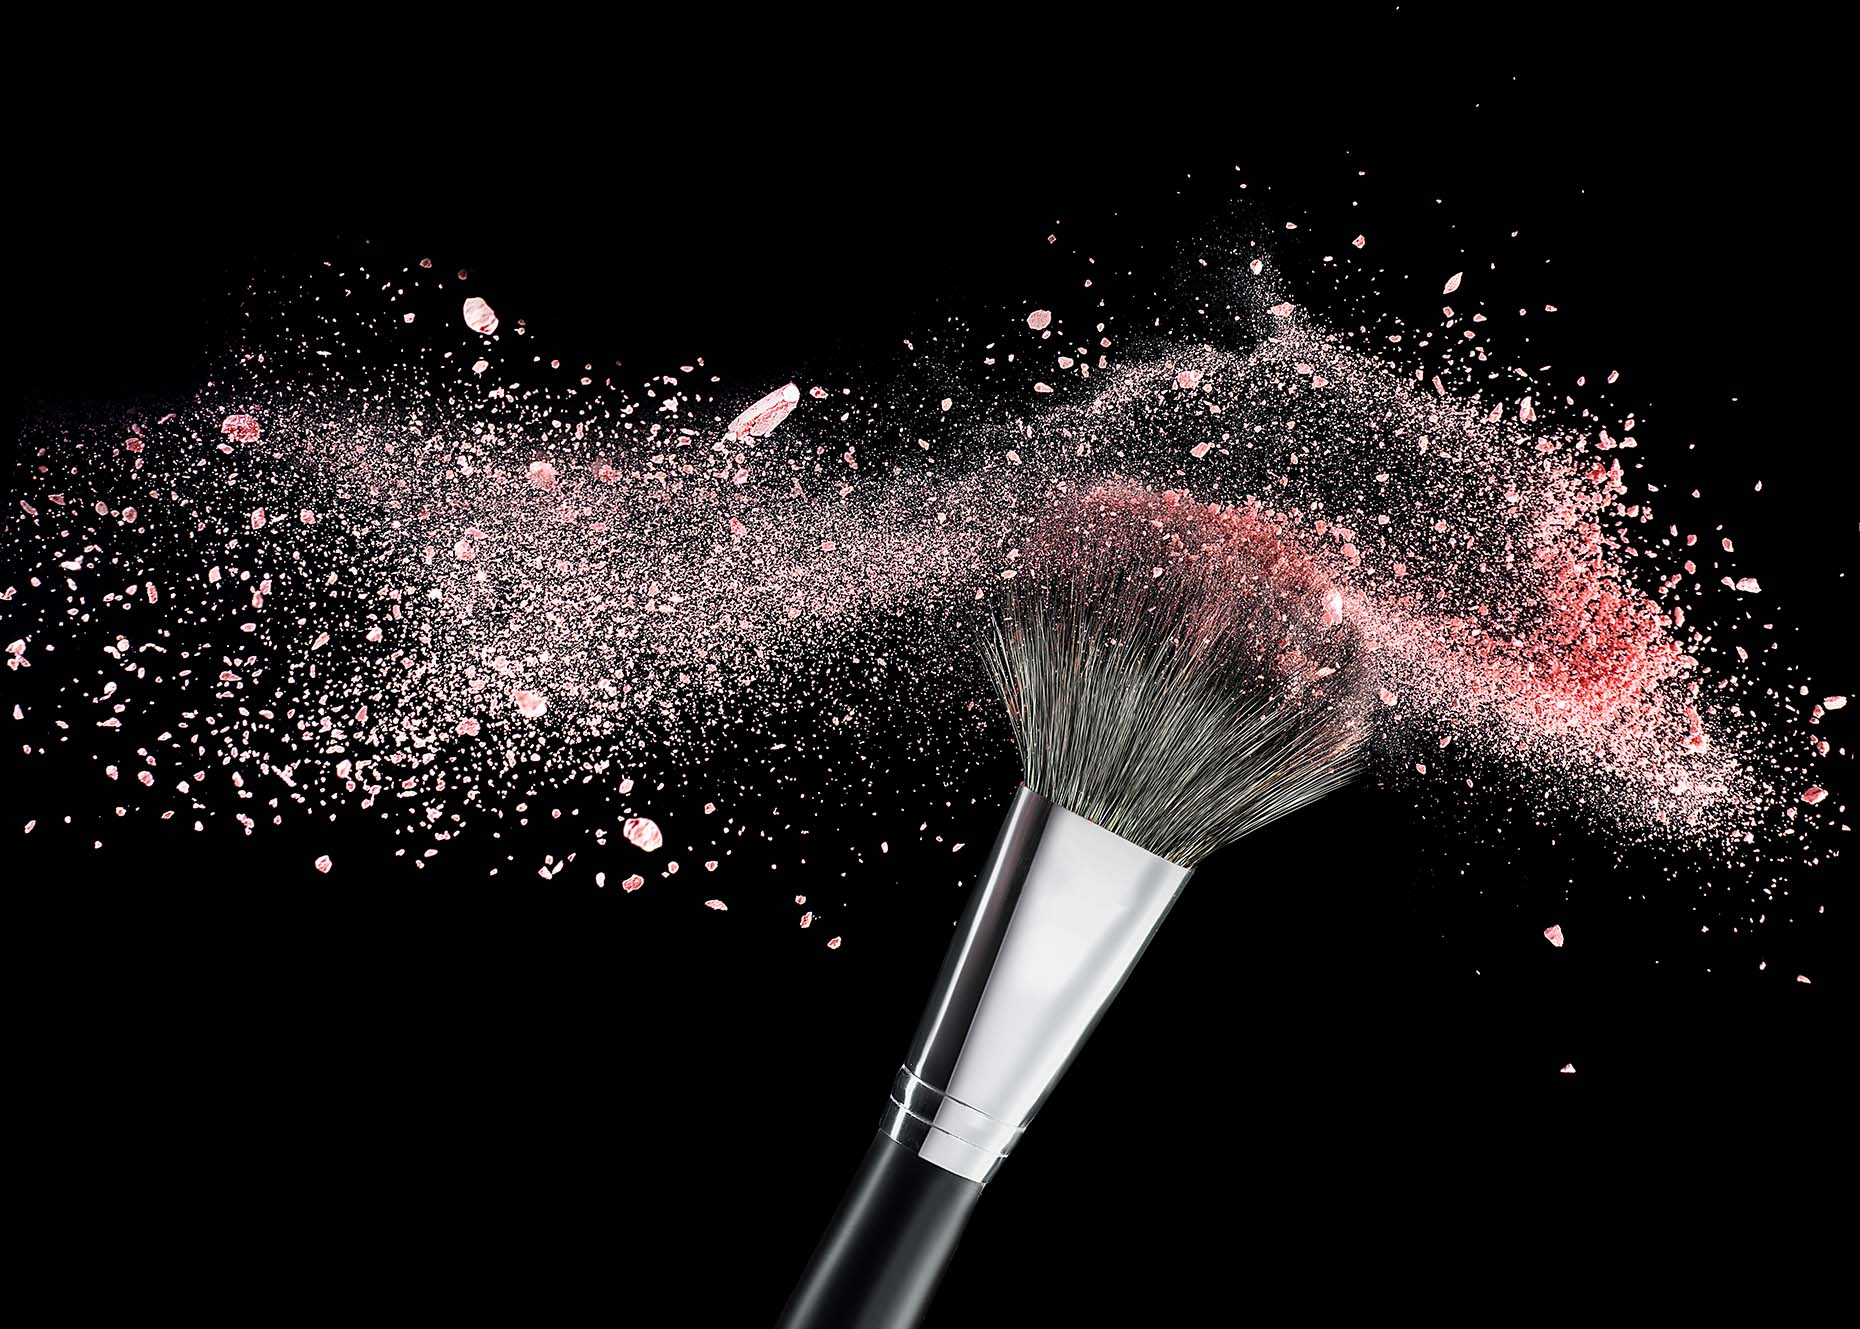 New-York-Cosmetics-phtographer-powder